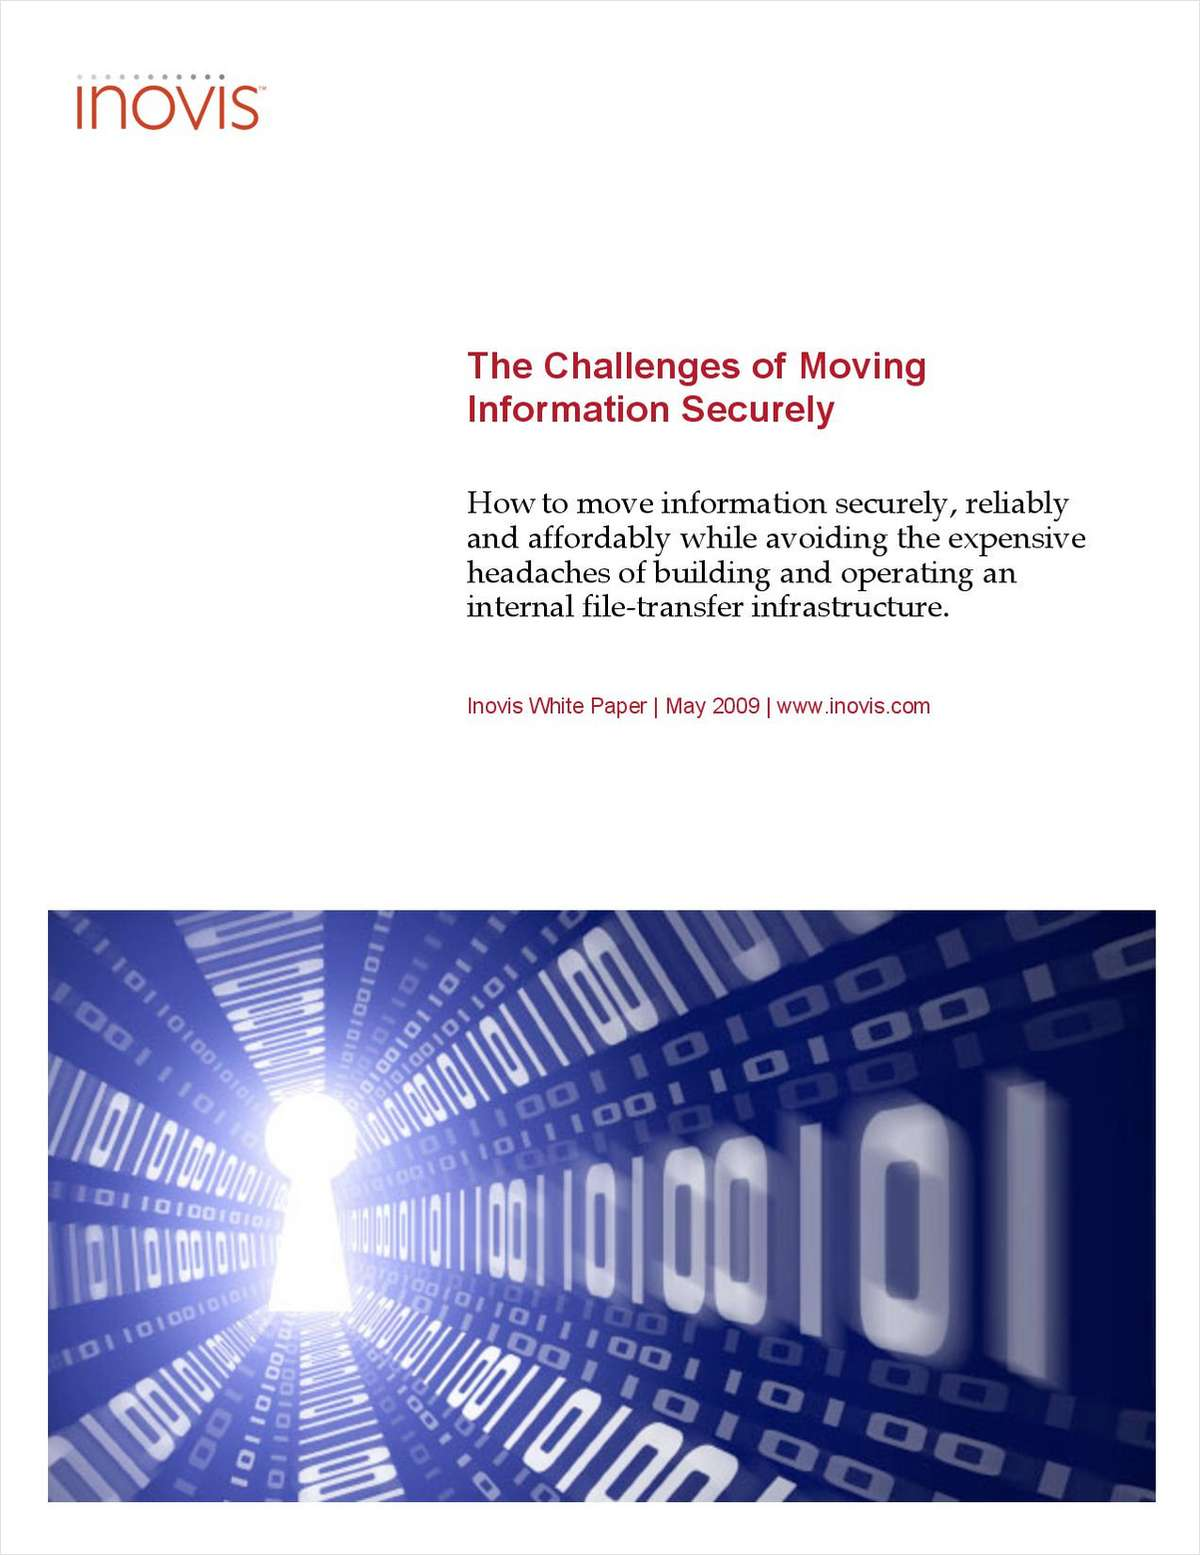 The Challenges of Moving Financial Information Securely